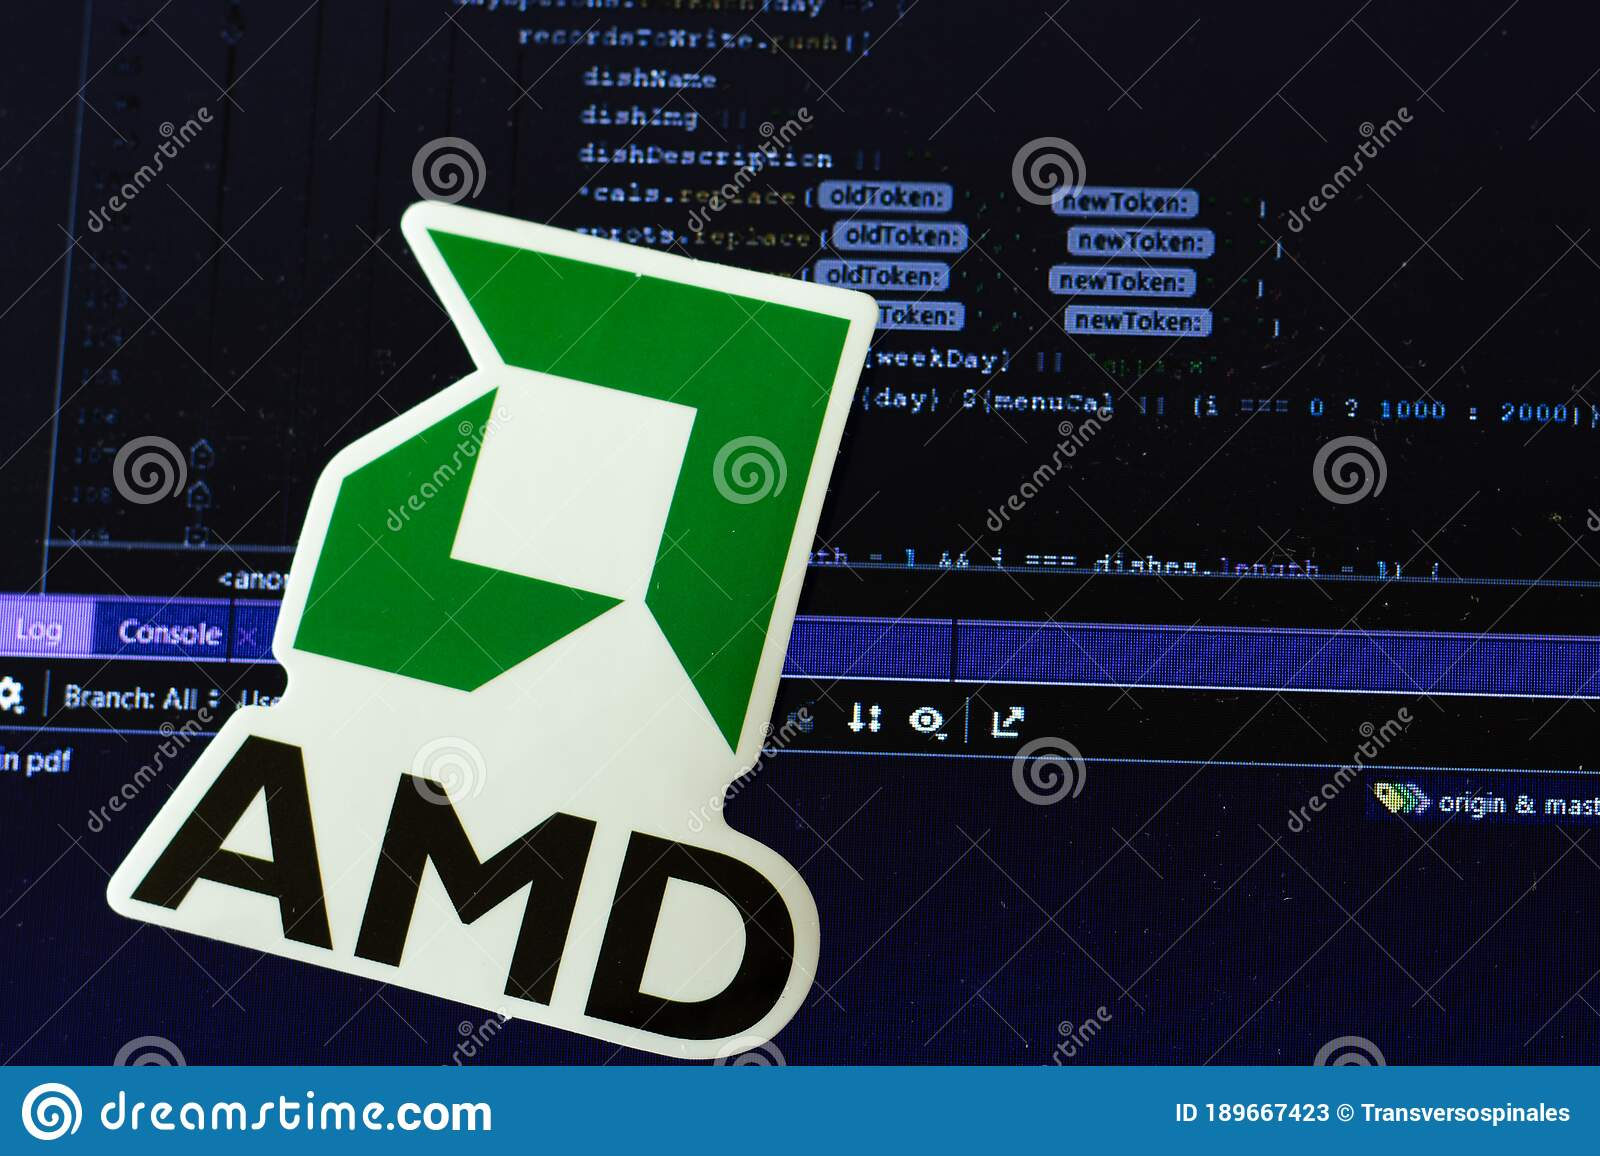 Moscow Russia 1 June 2020 Amd Logo Sign With Program Code On Background Computer Science Illustrative Editorial Editorial Stock Photo Image Of Digital Closeup 189667423